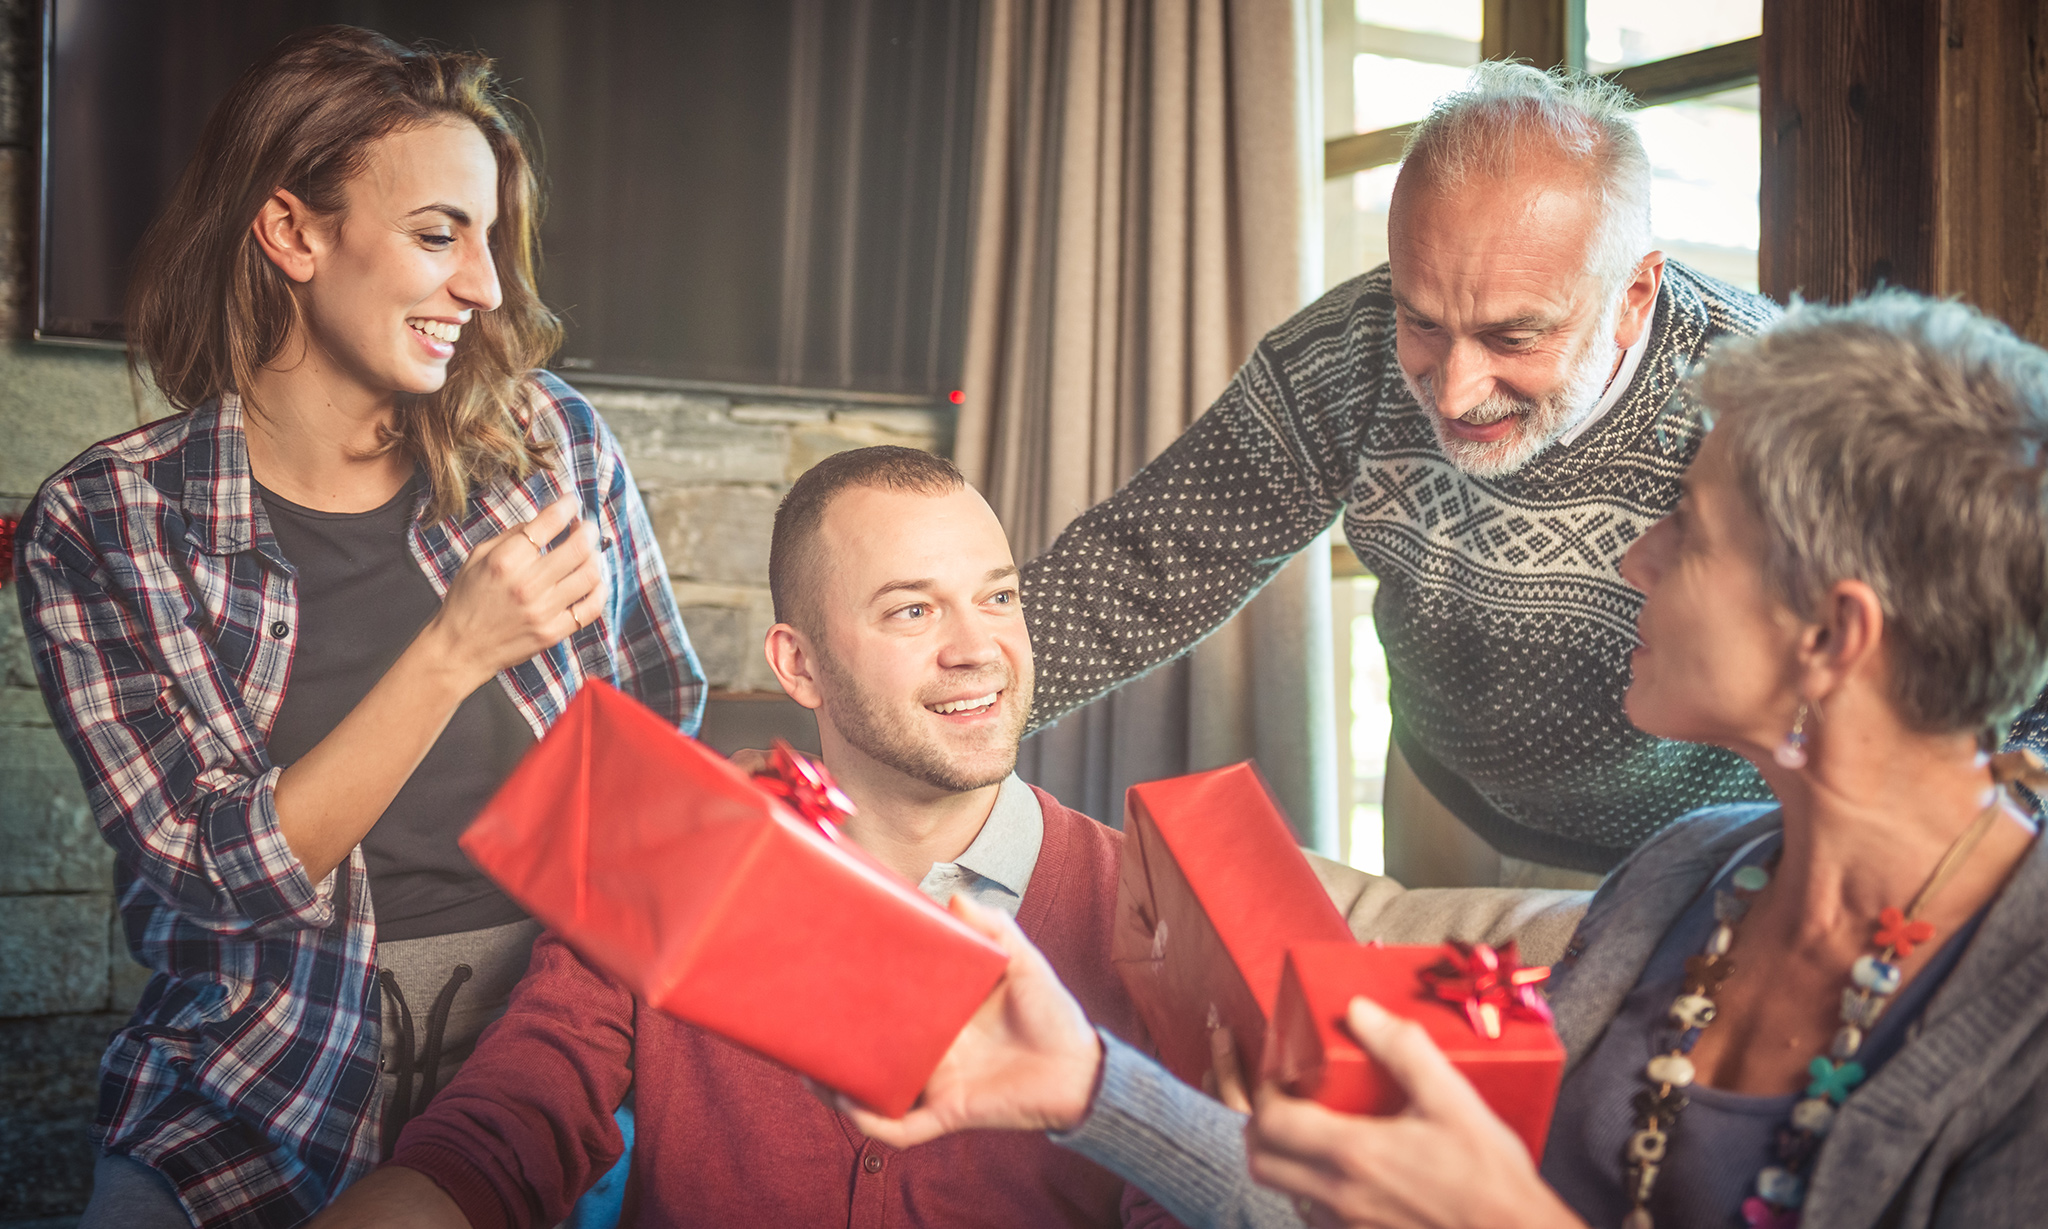 Family exchanging gifts